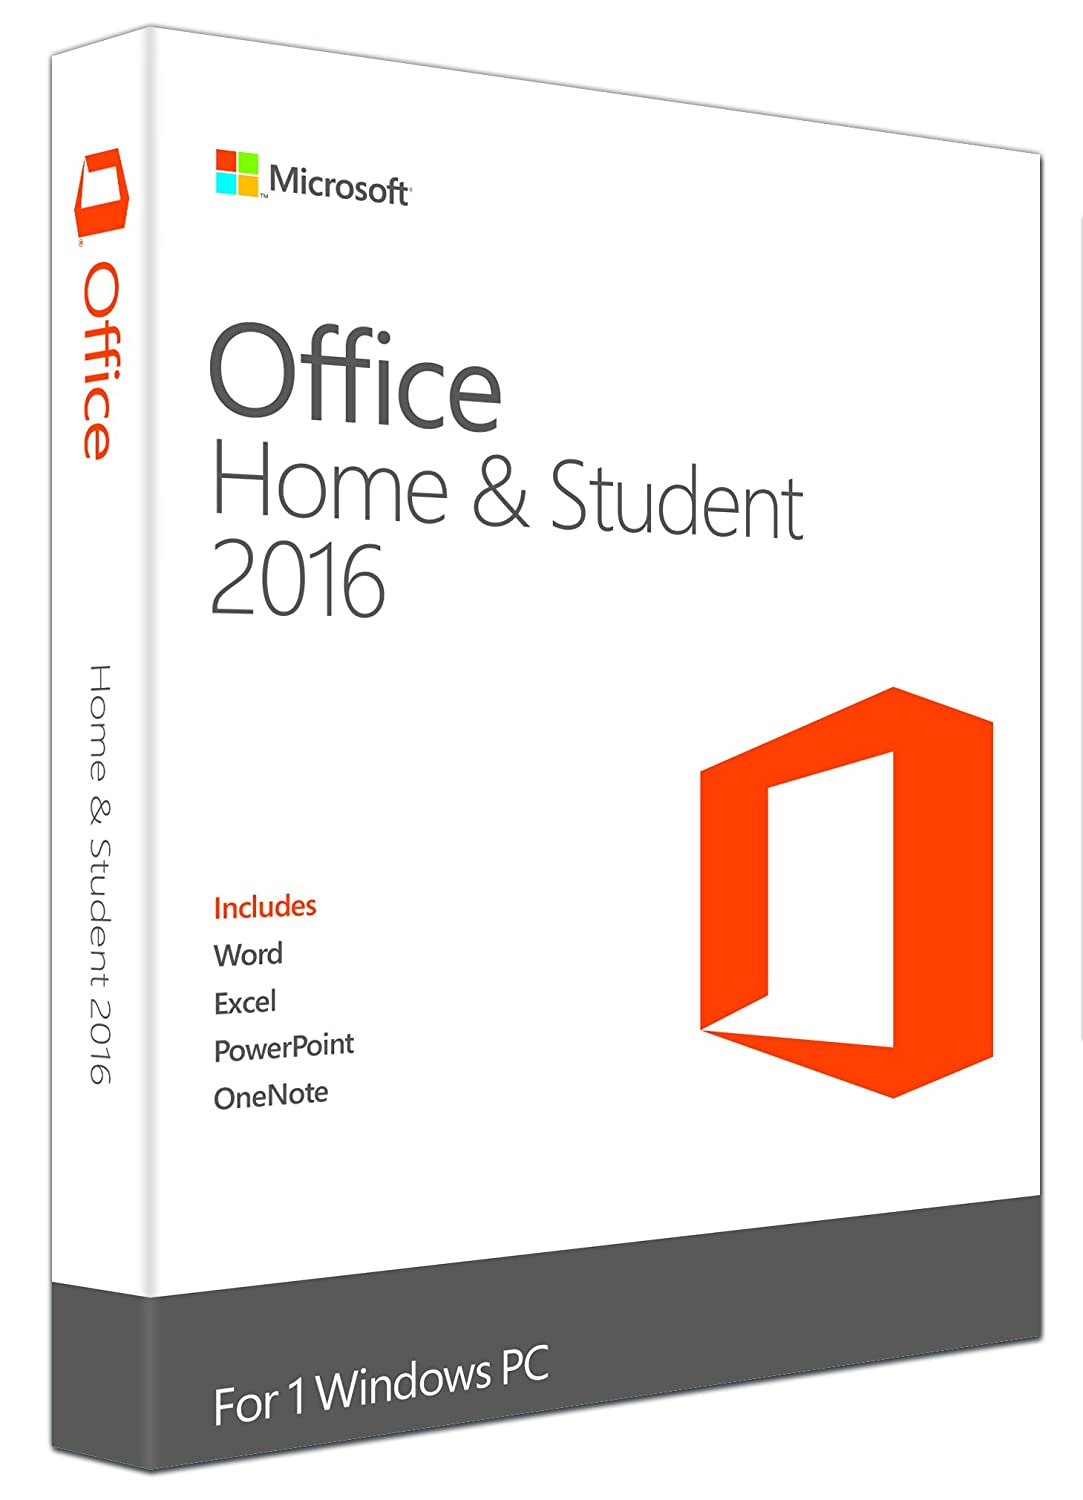 cd key microsoft office 2007 home and student